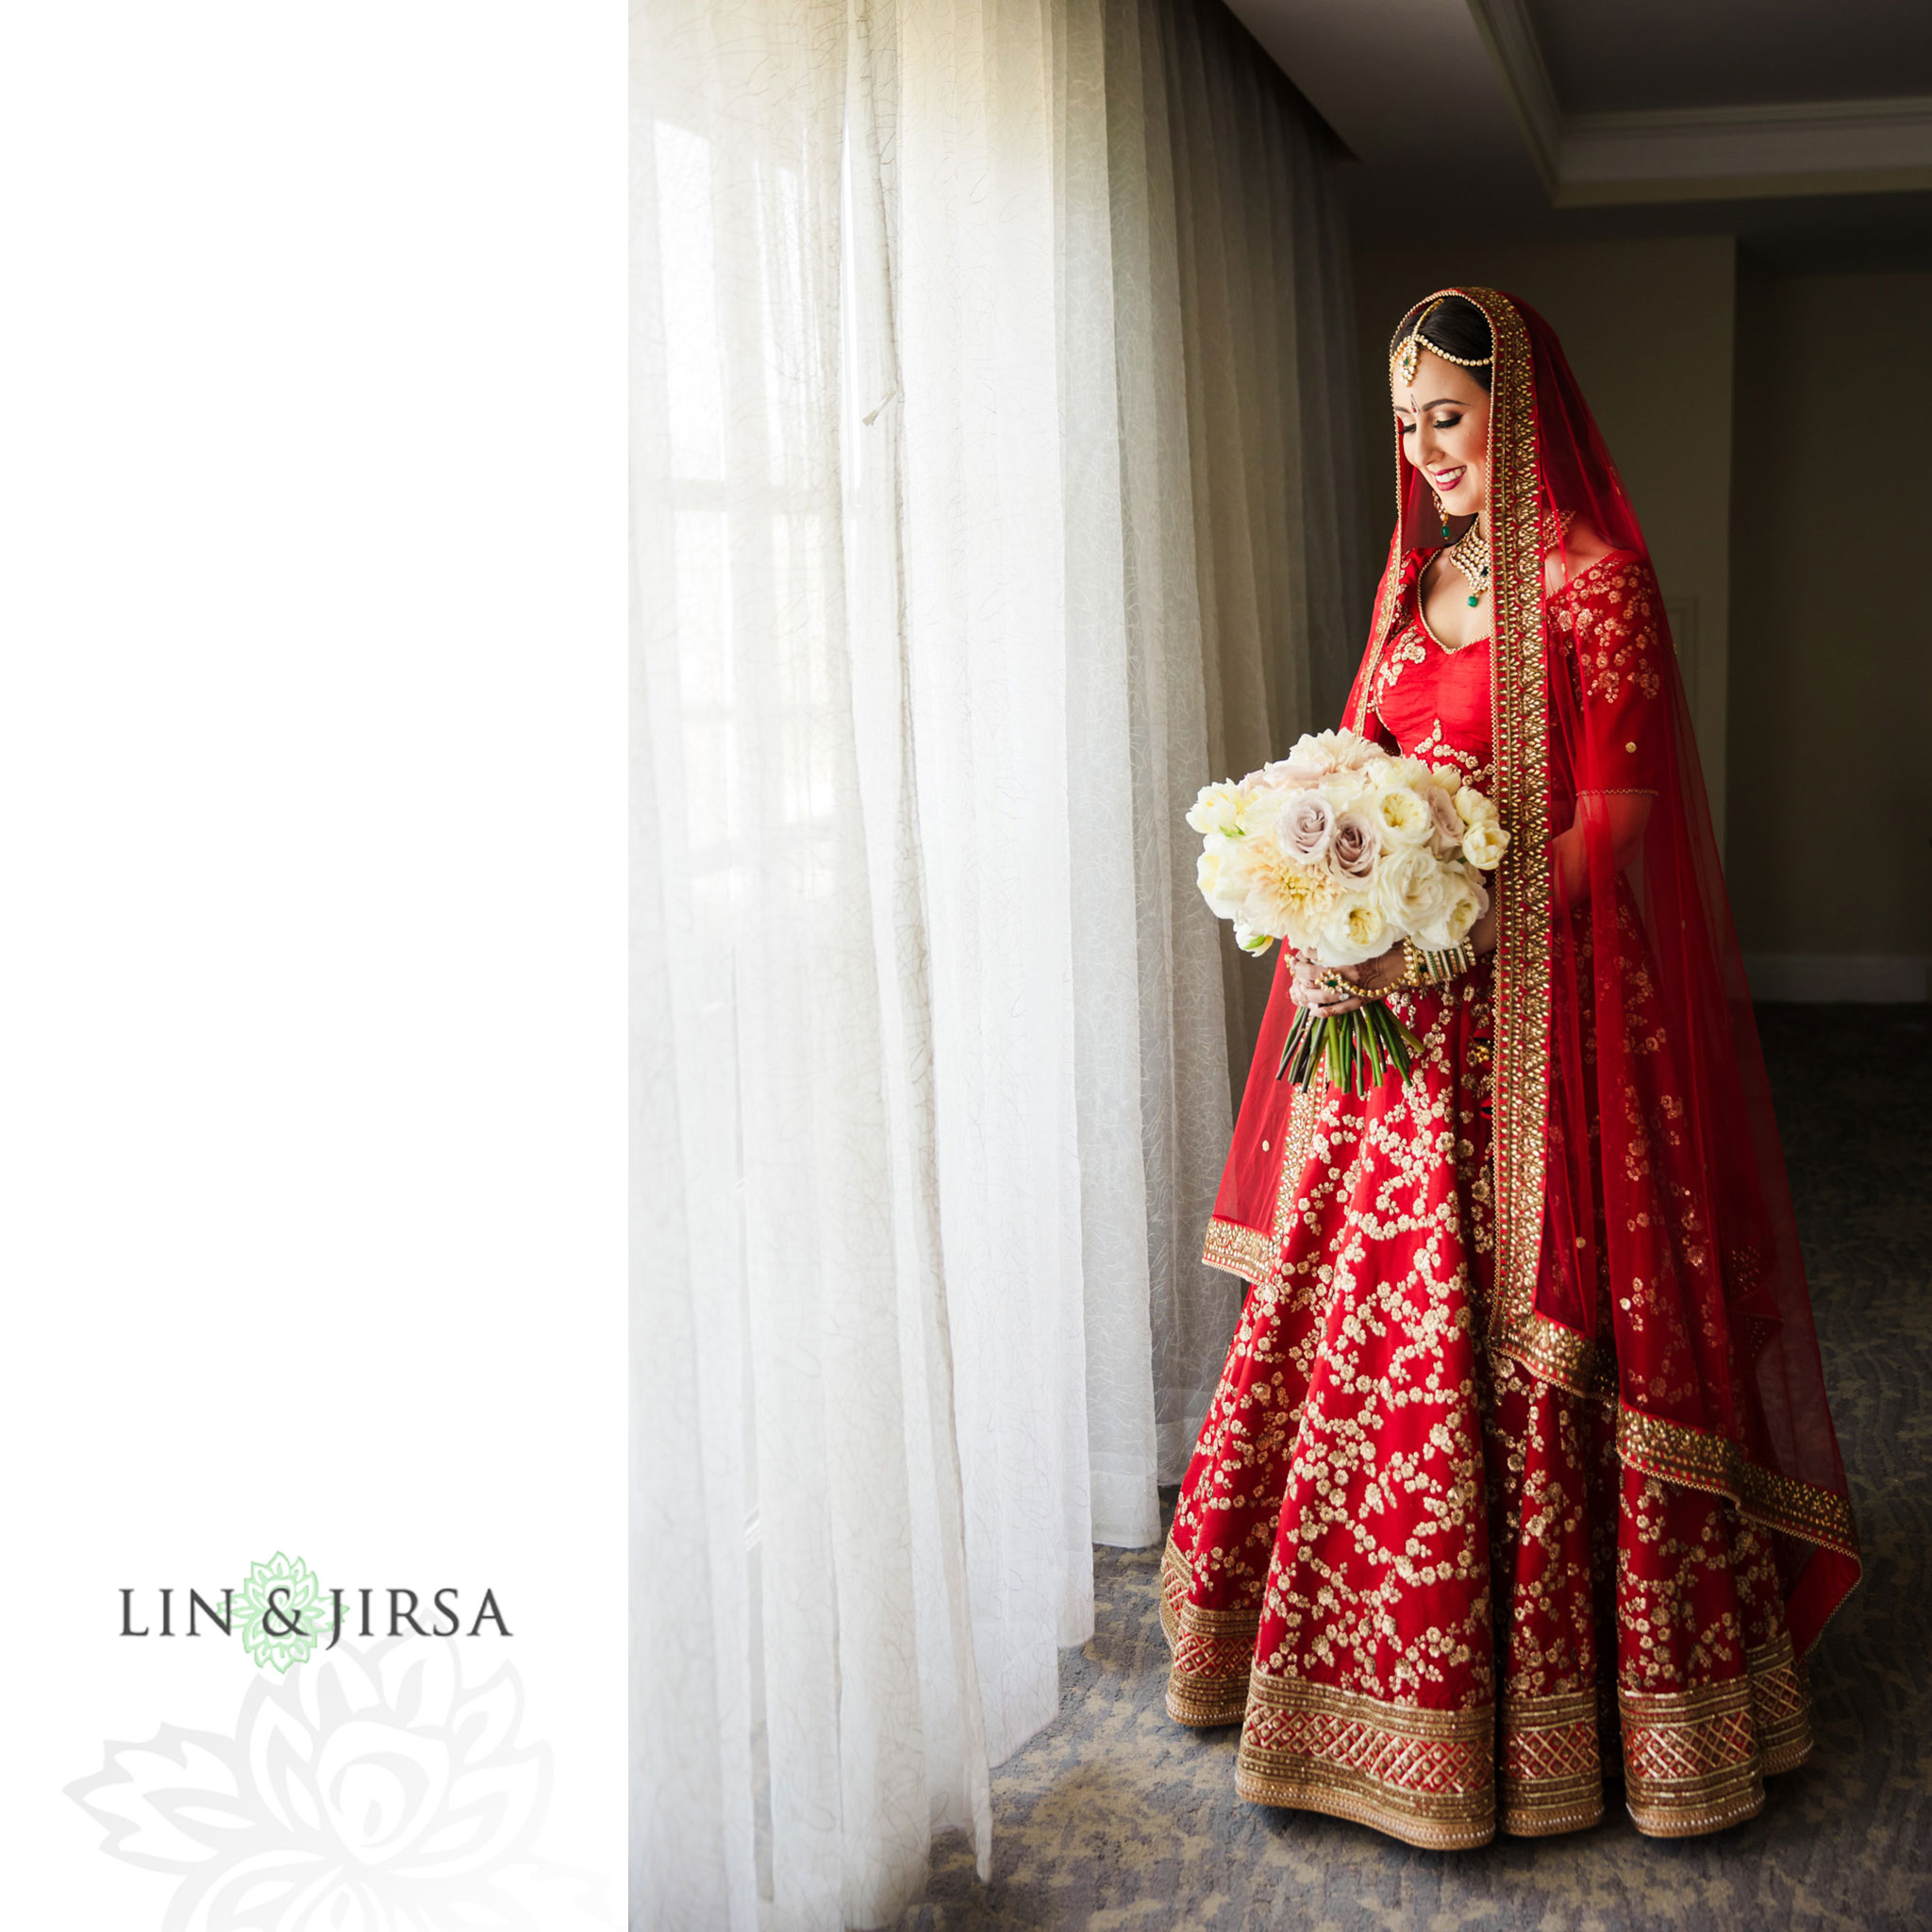 003 ritz carlton laguna niguel indian bride wedding photography